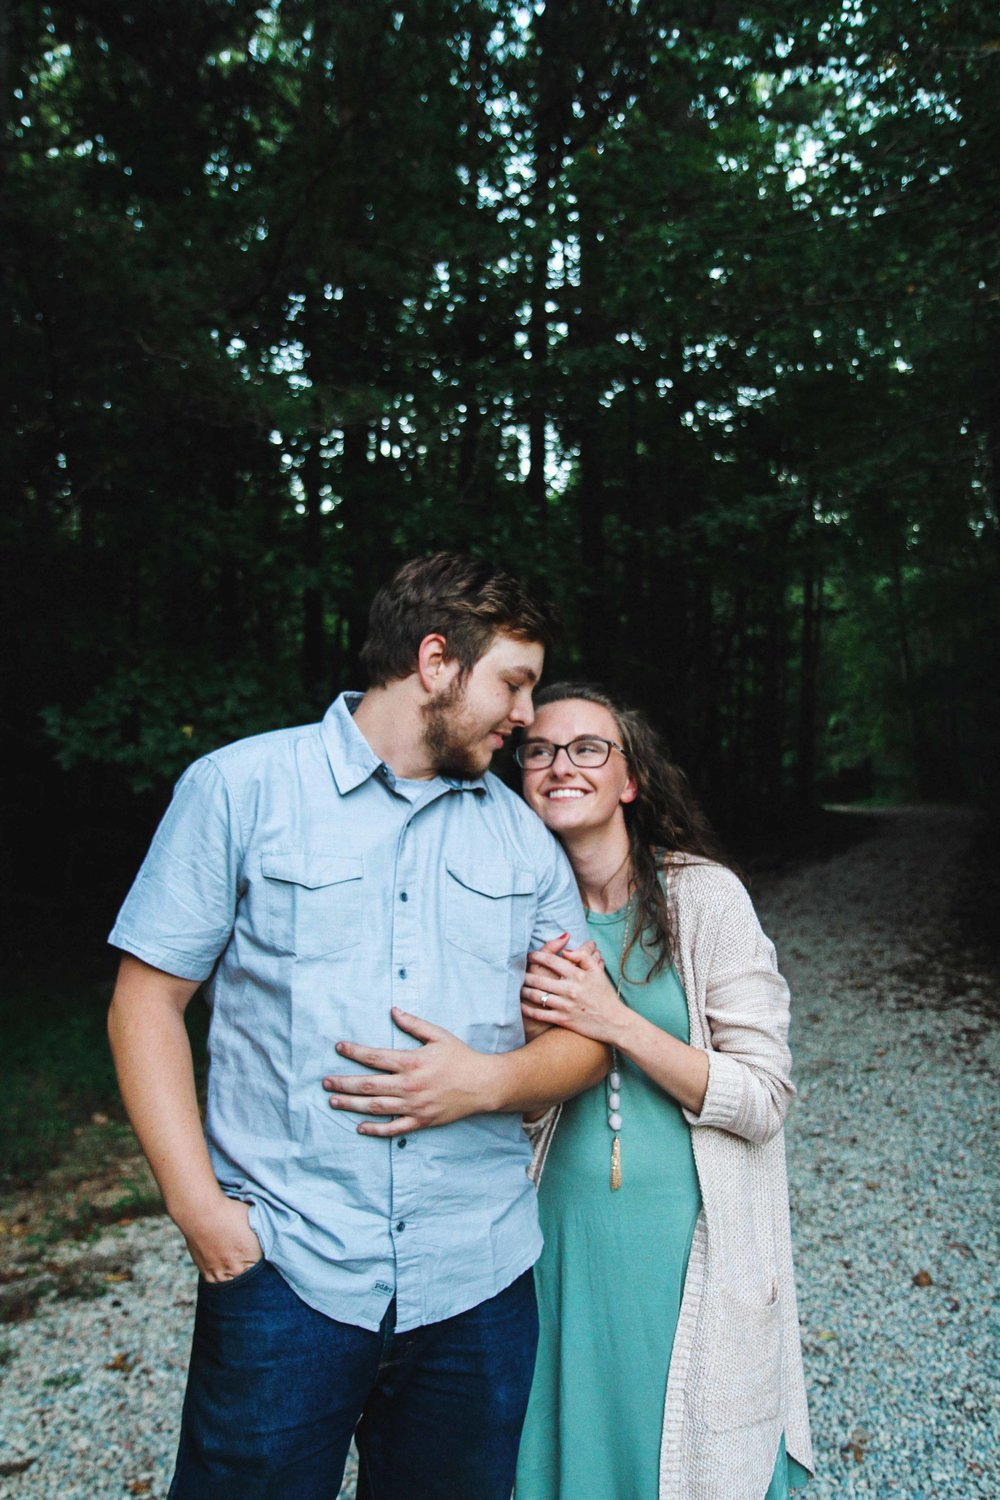 Johns-Ledford Engaged_7445.jpg